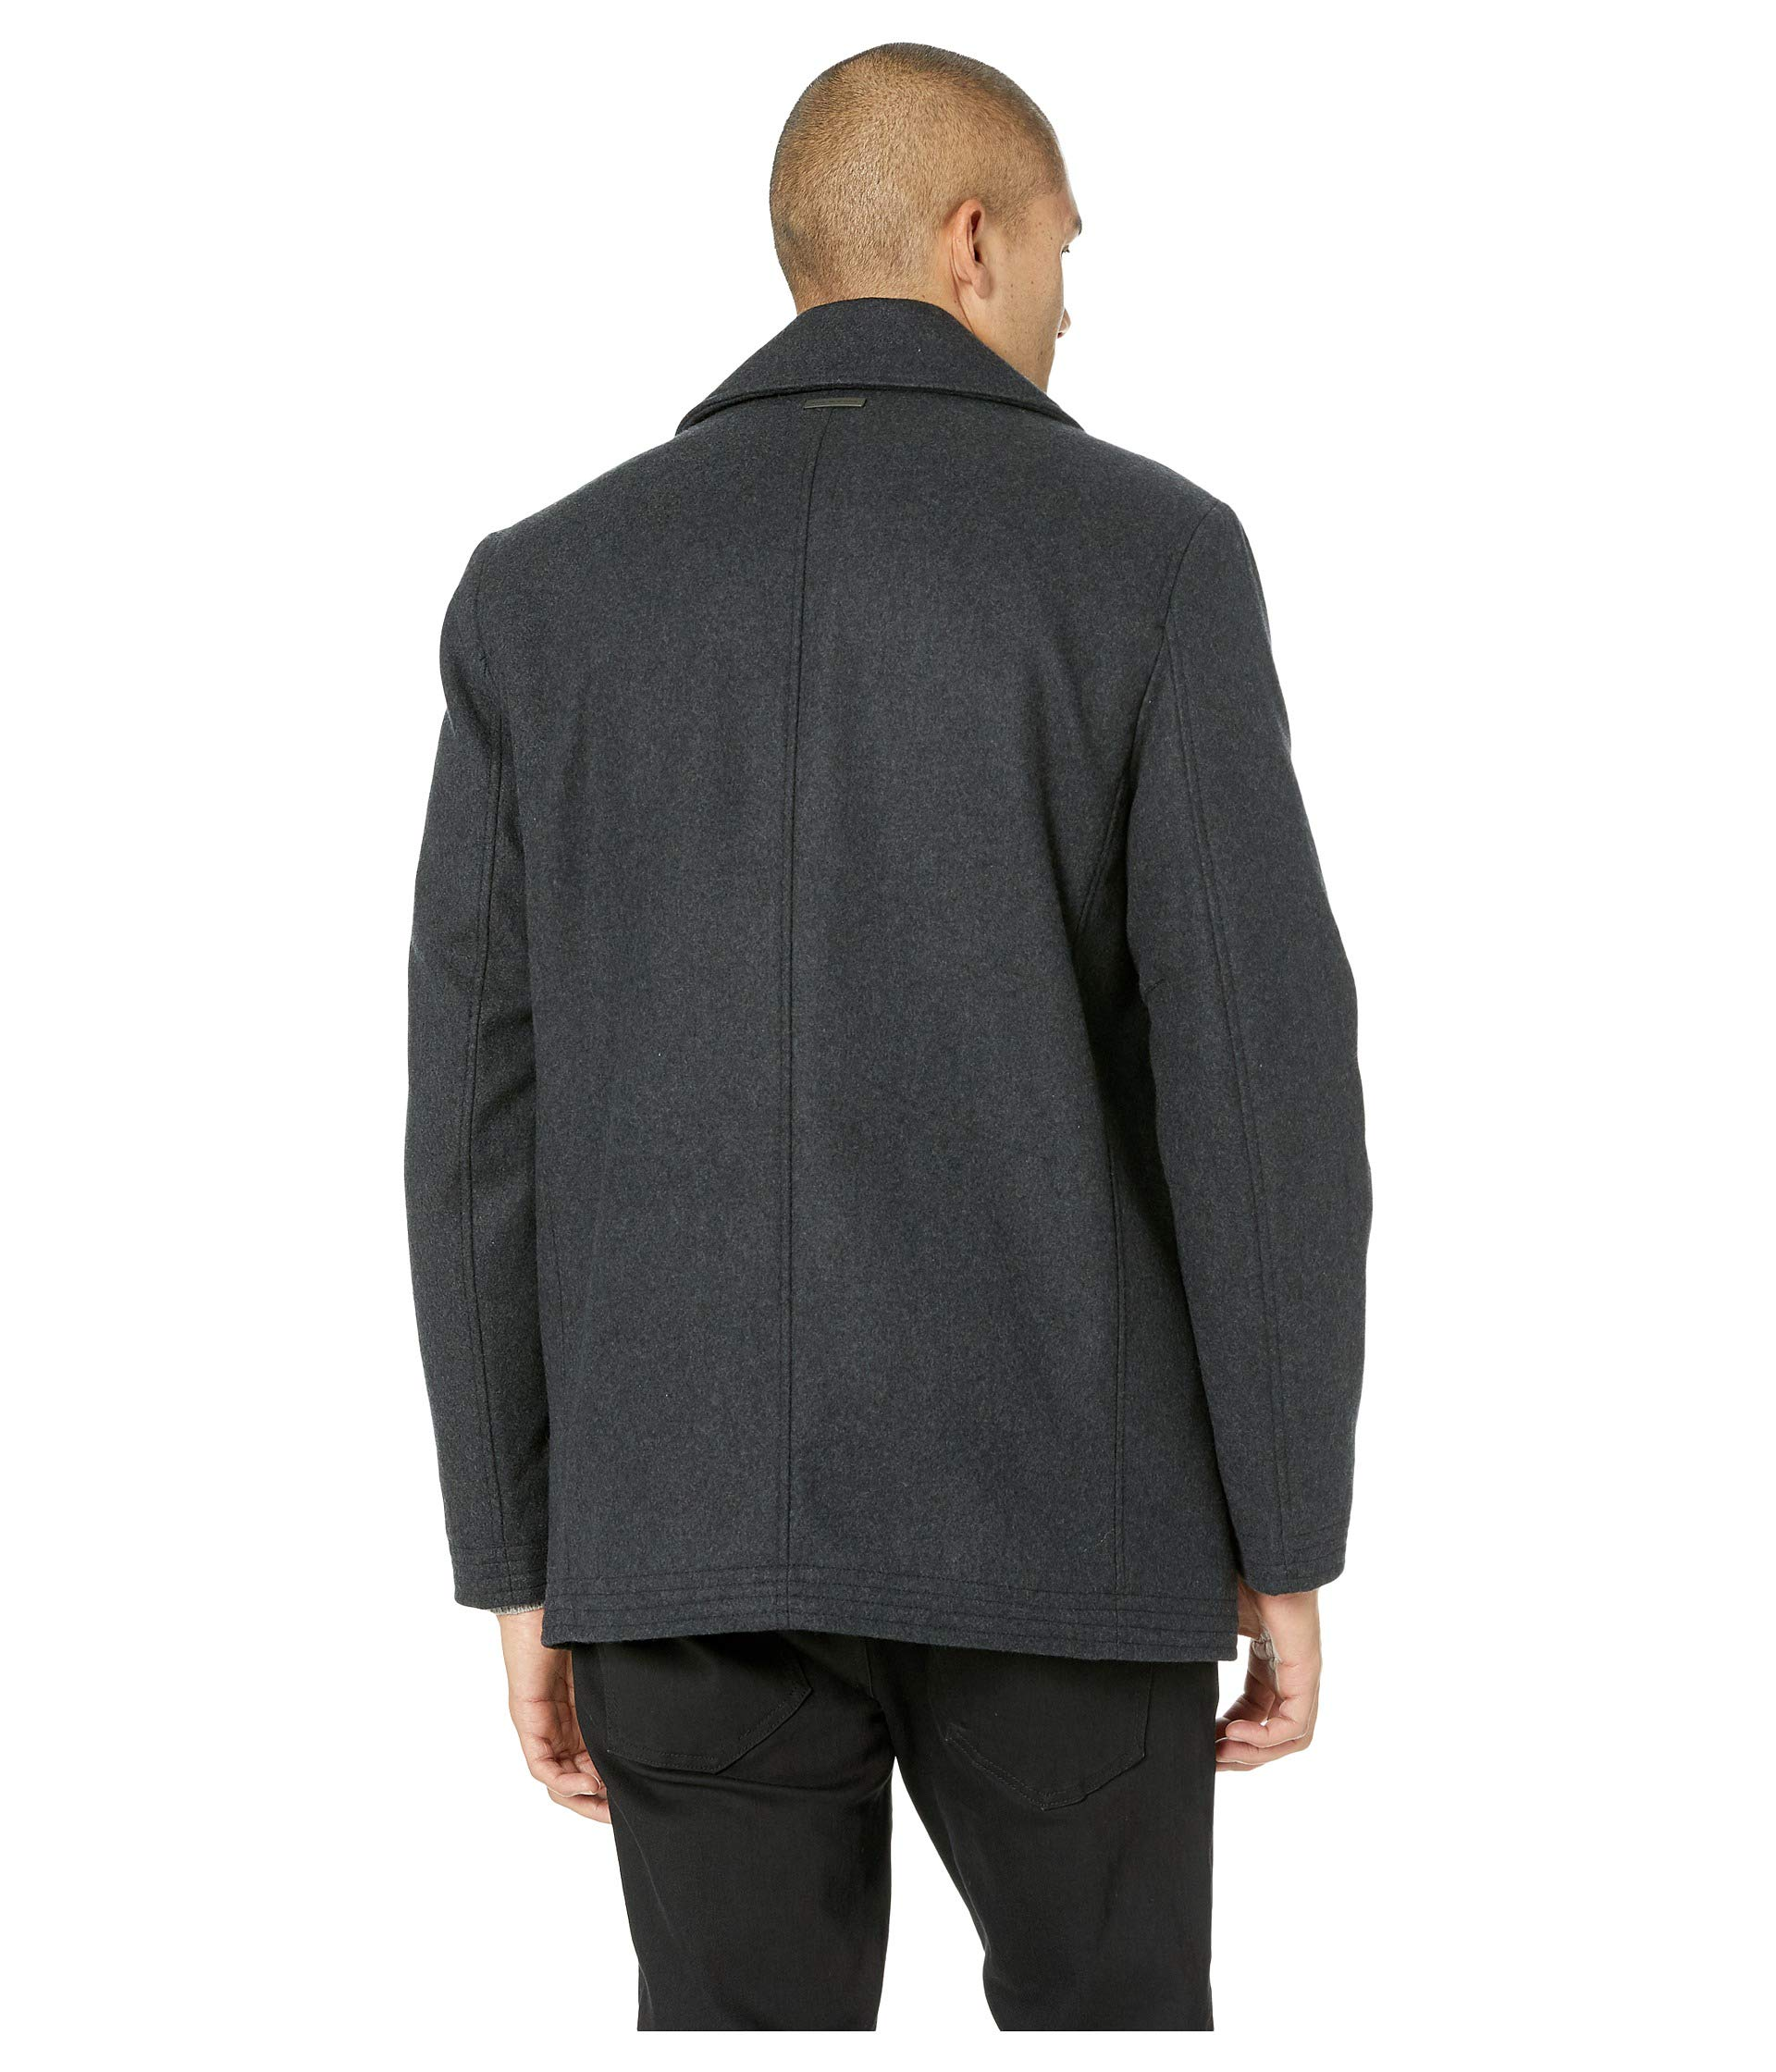 New Andrew Trim Melton By Peacoat Charcoal Bib Wool York W Marc Pu Knit 6HOxd6